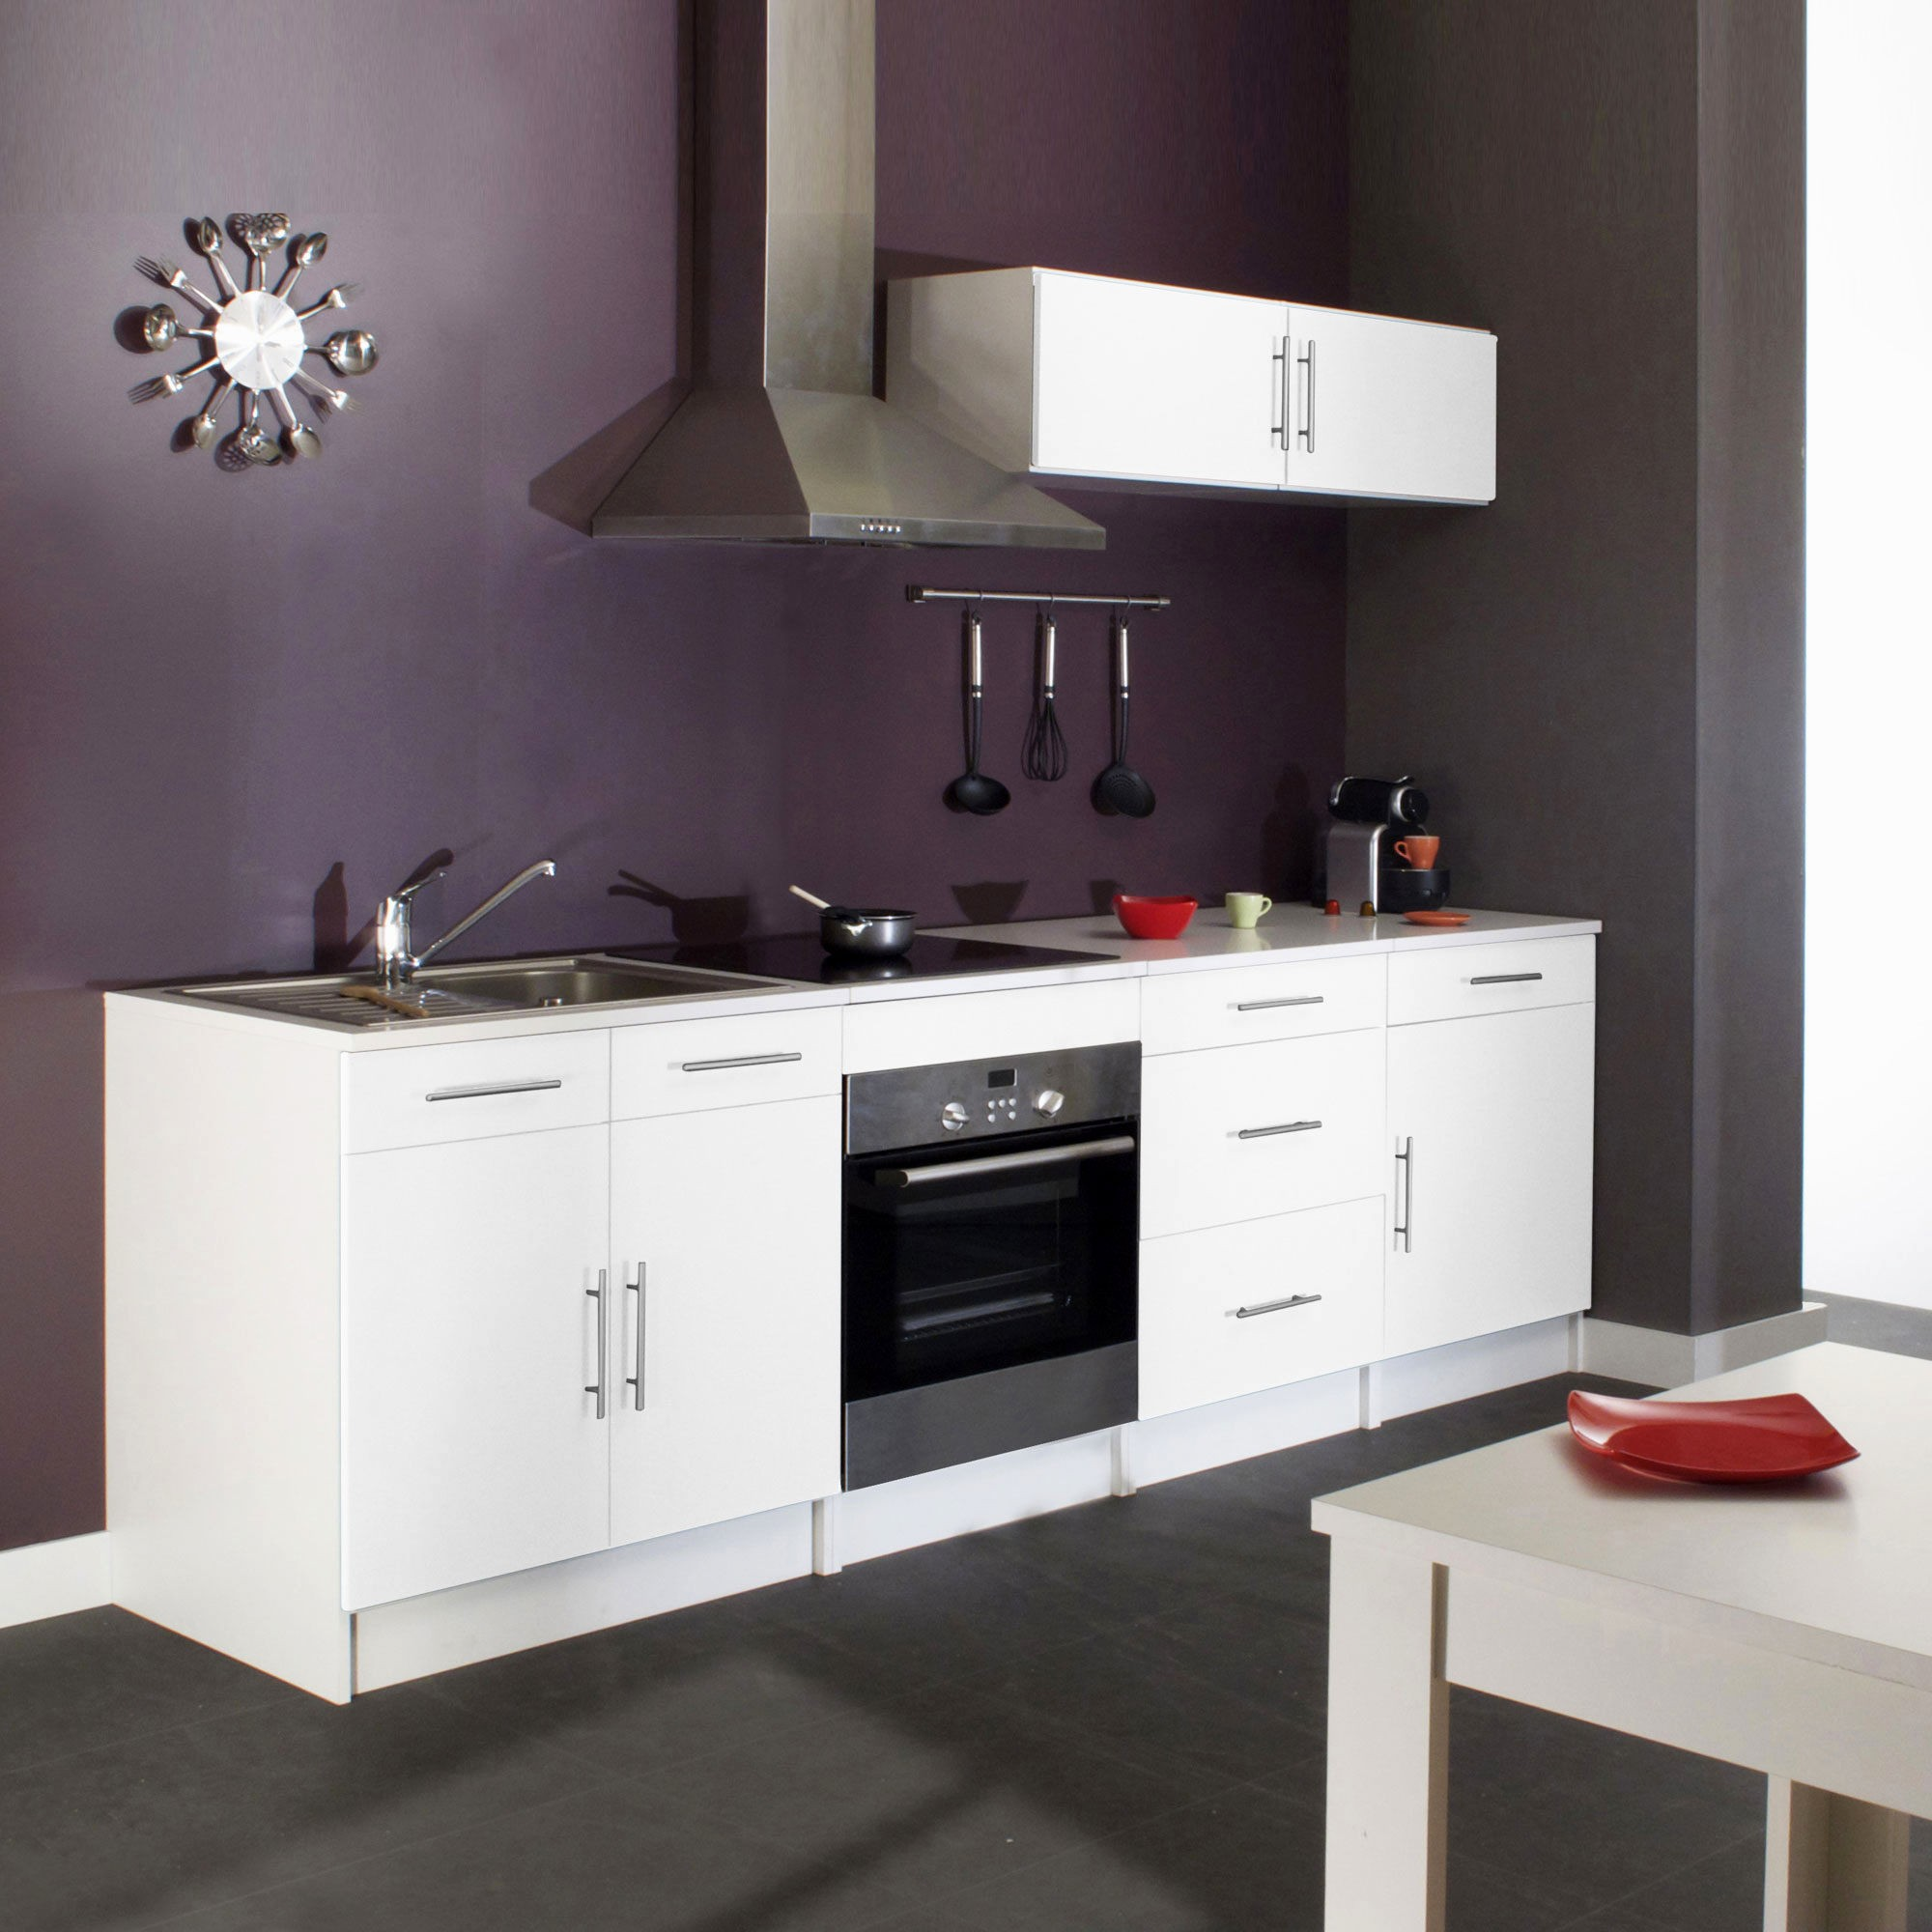 evier cuisine encastrable ikea cuisine id es de. Black Bedroom Furniture Sets. Home Design Ideas